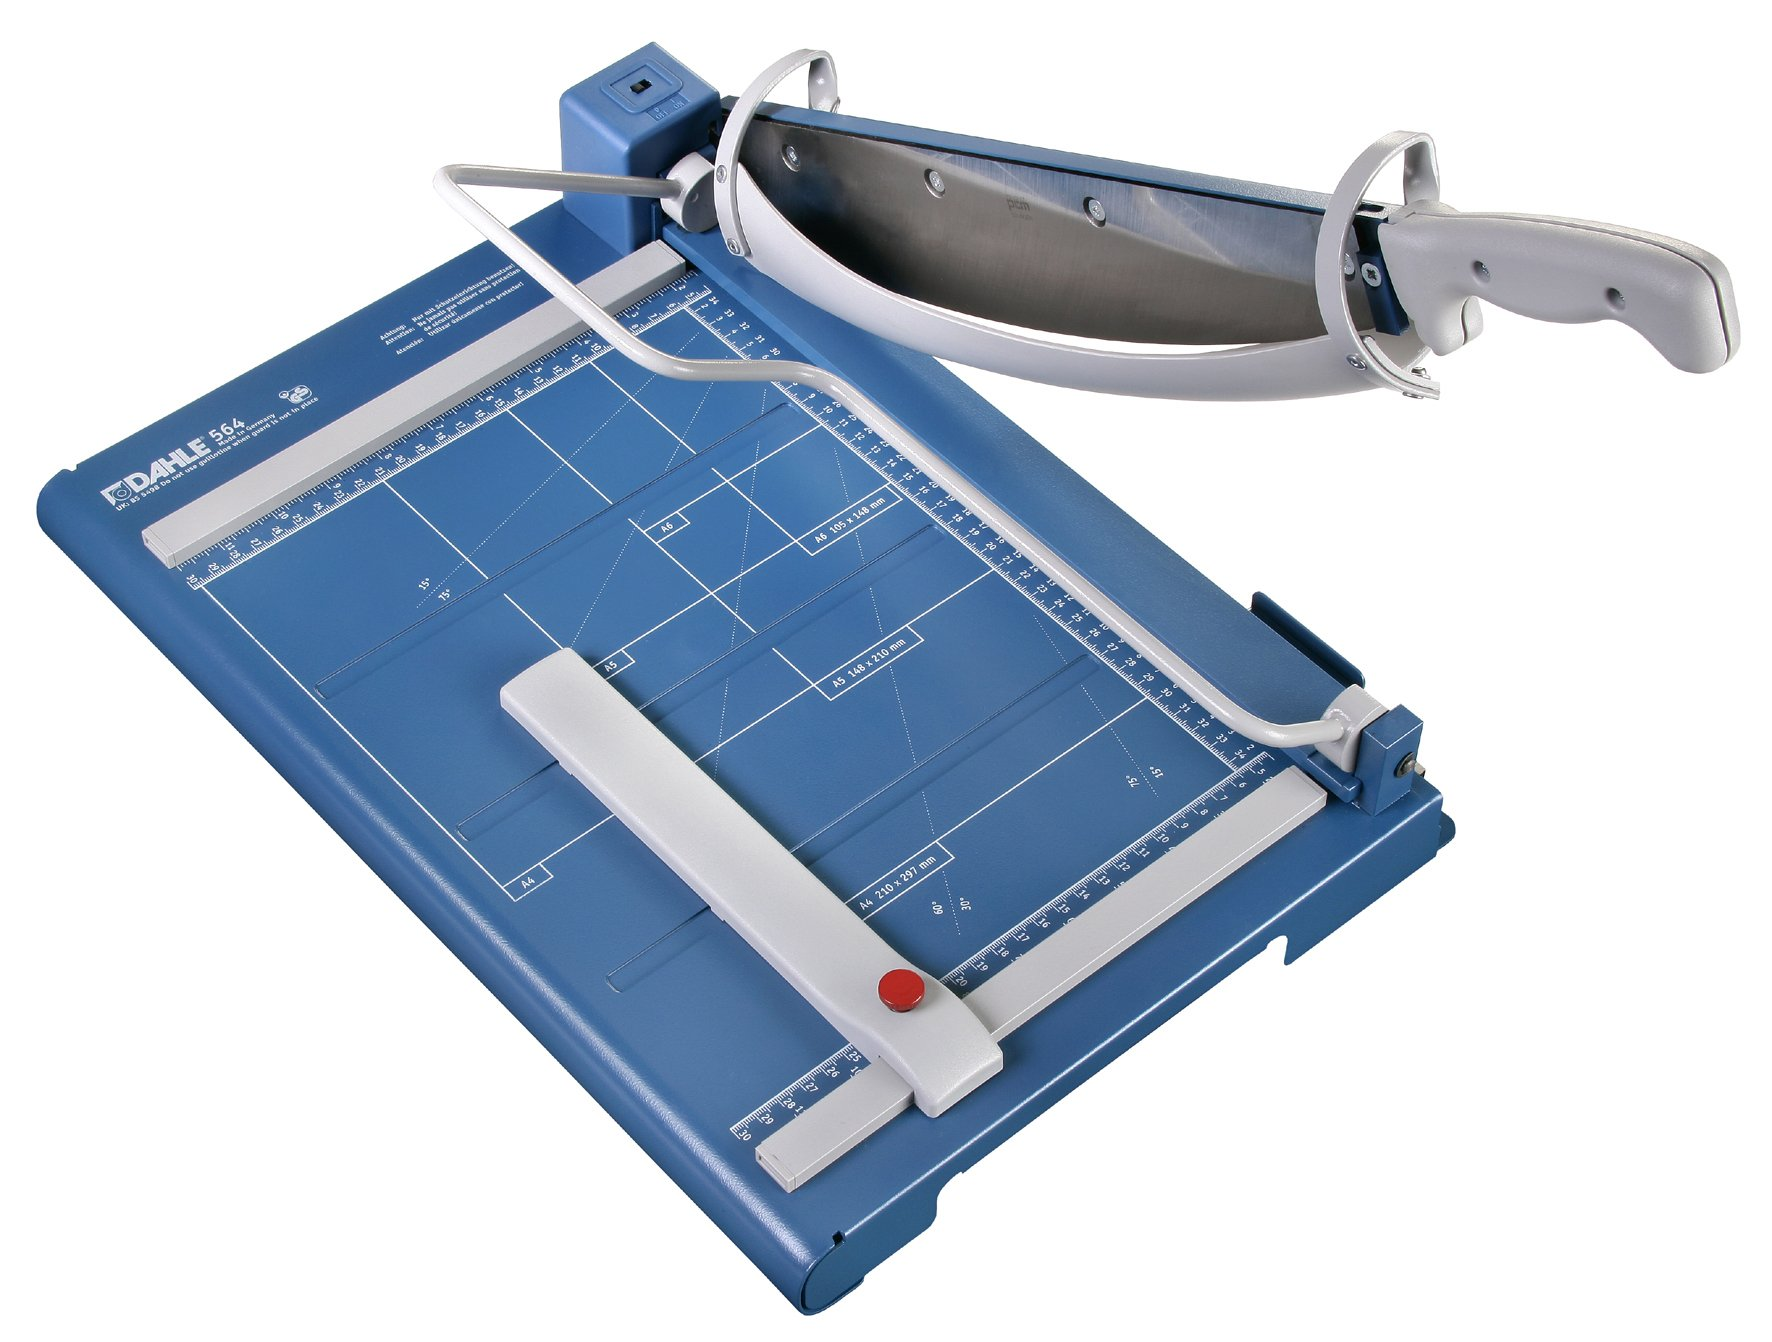 Dahle 564 Premium Guillotine Trimmer w/Laser Guide, 14-1/8'' Cut Length, 40 Sheet Capacity, Self-Sharpening, Automatic Clamp, w/Safety Guard by Dahle